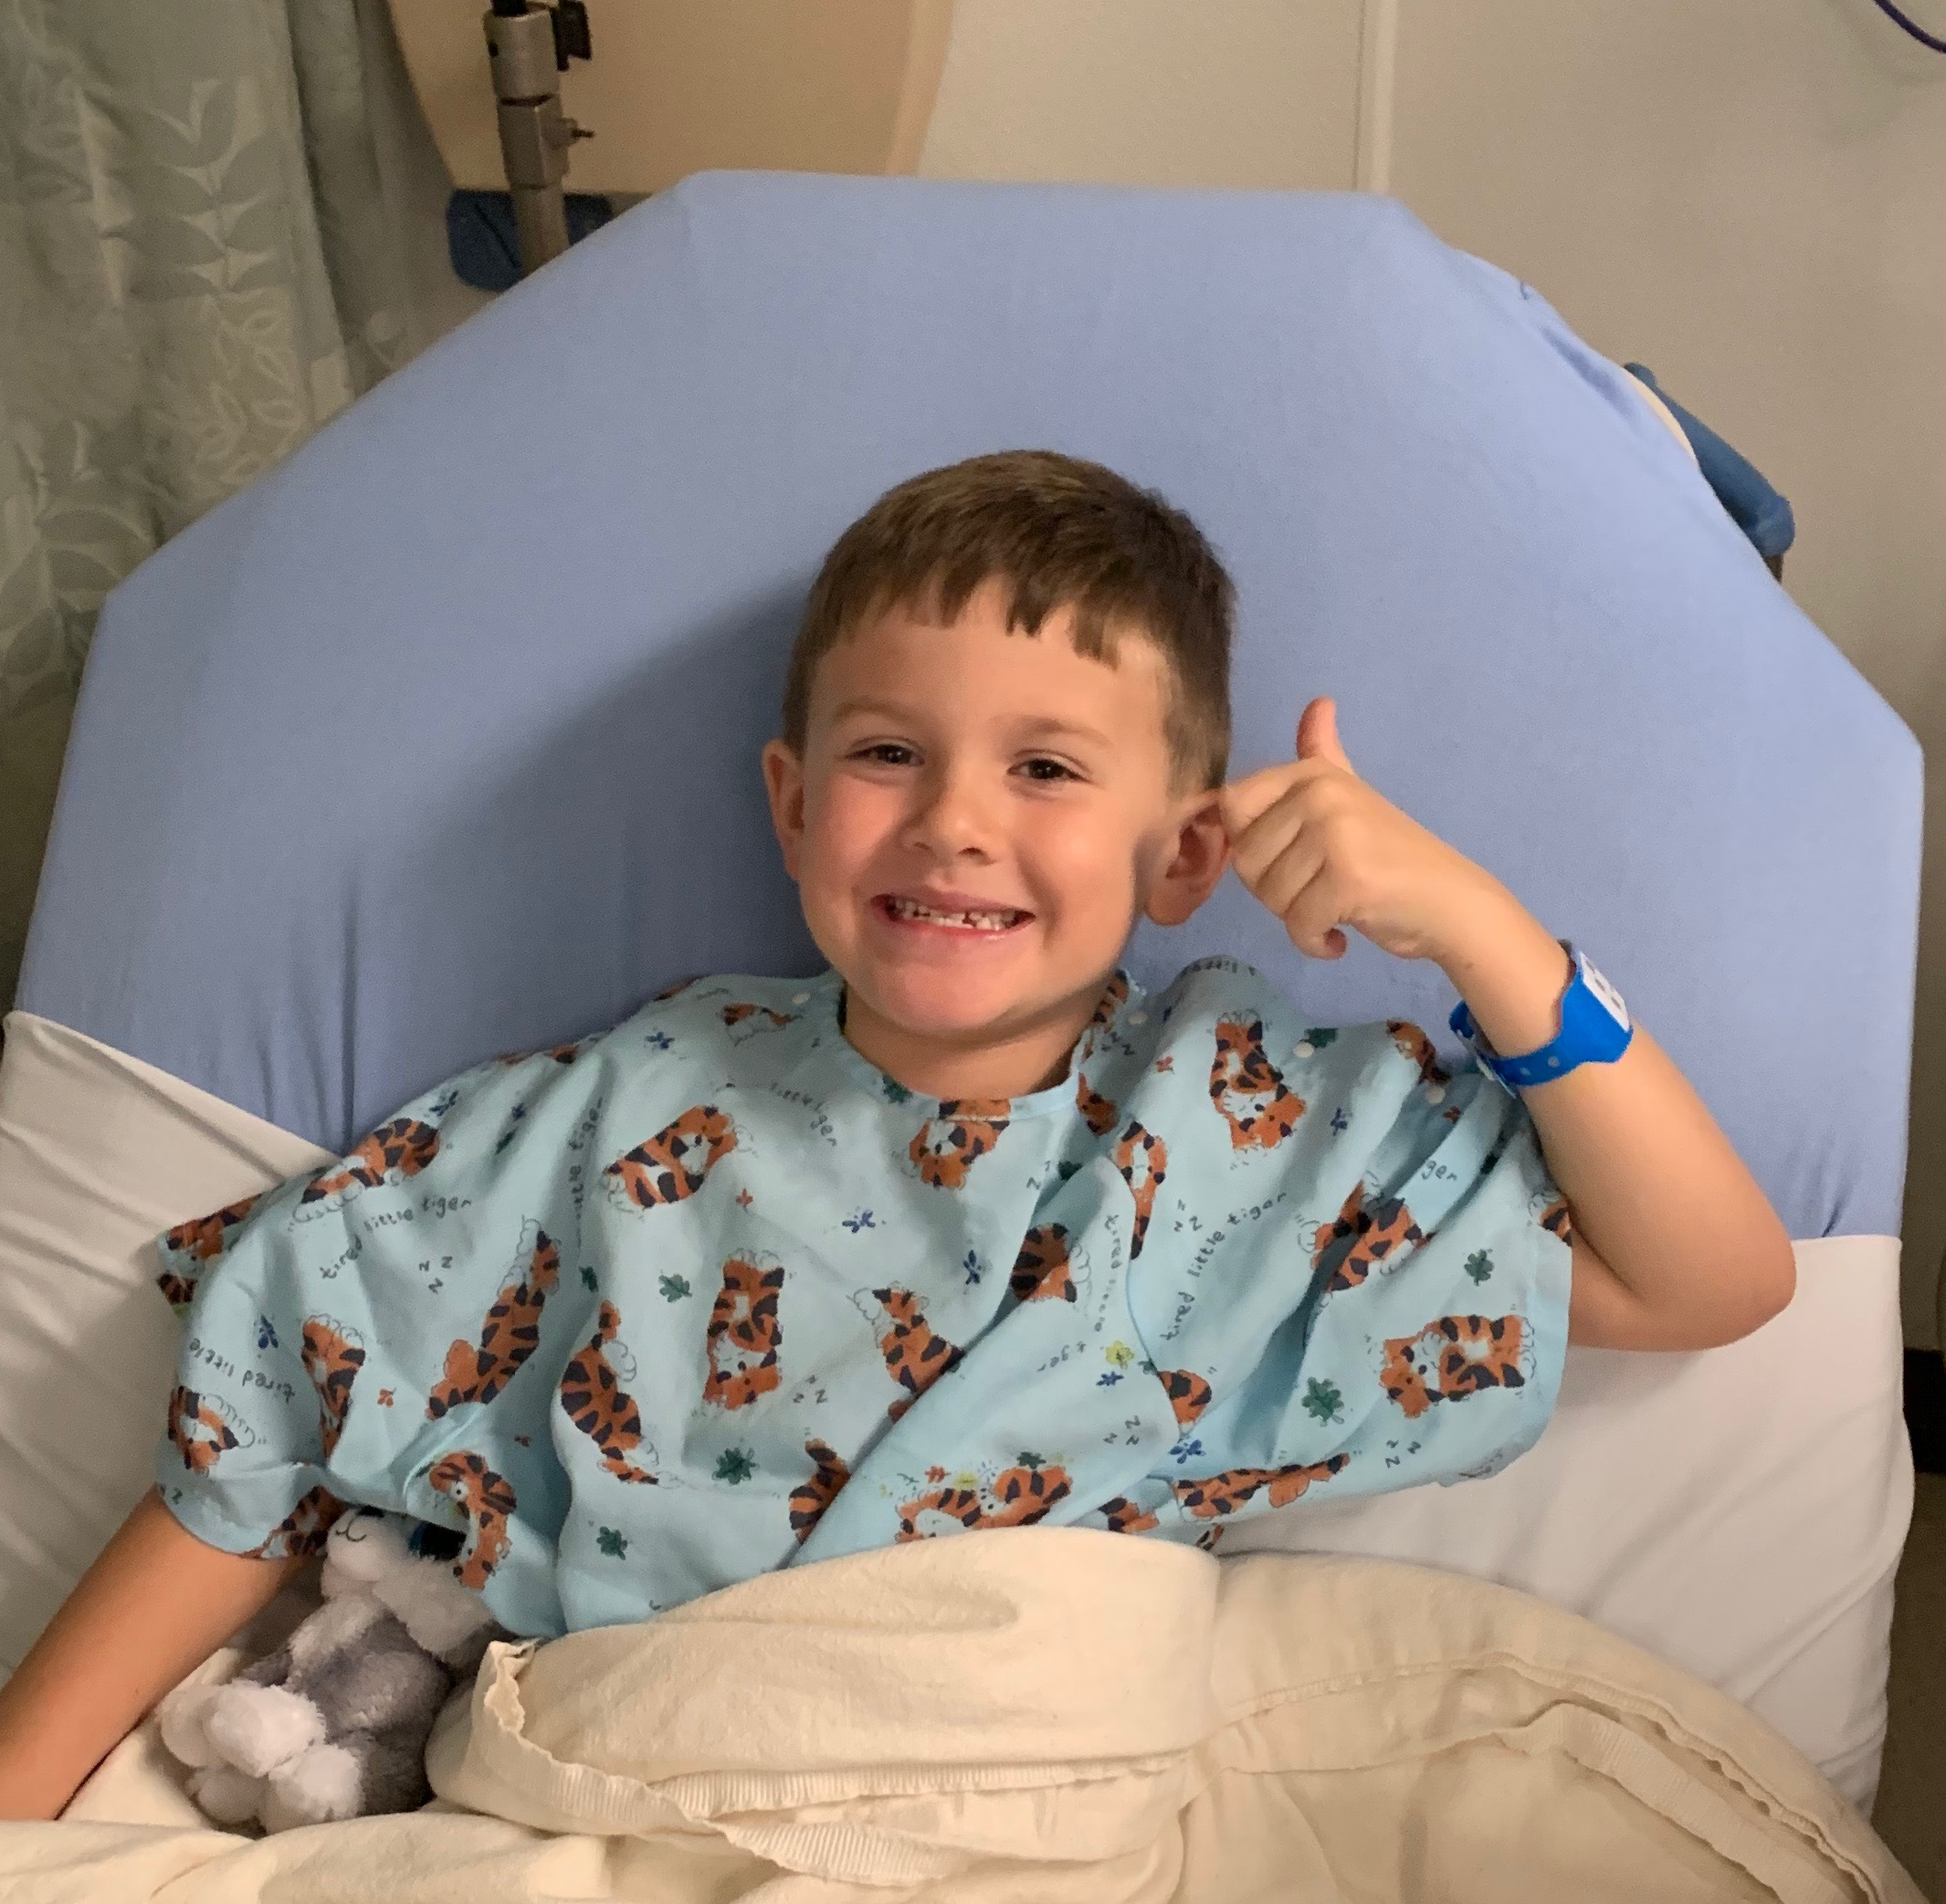 baylor in a hospital gown tucked into a hospital bed while smiling and holding a thumbs up